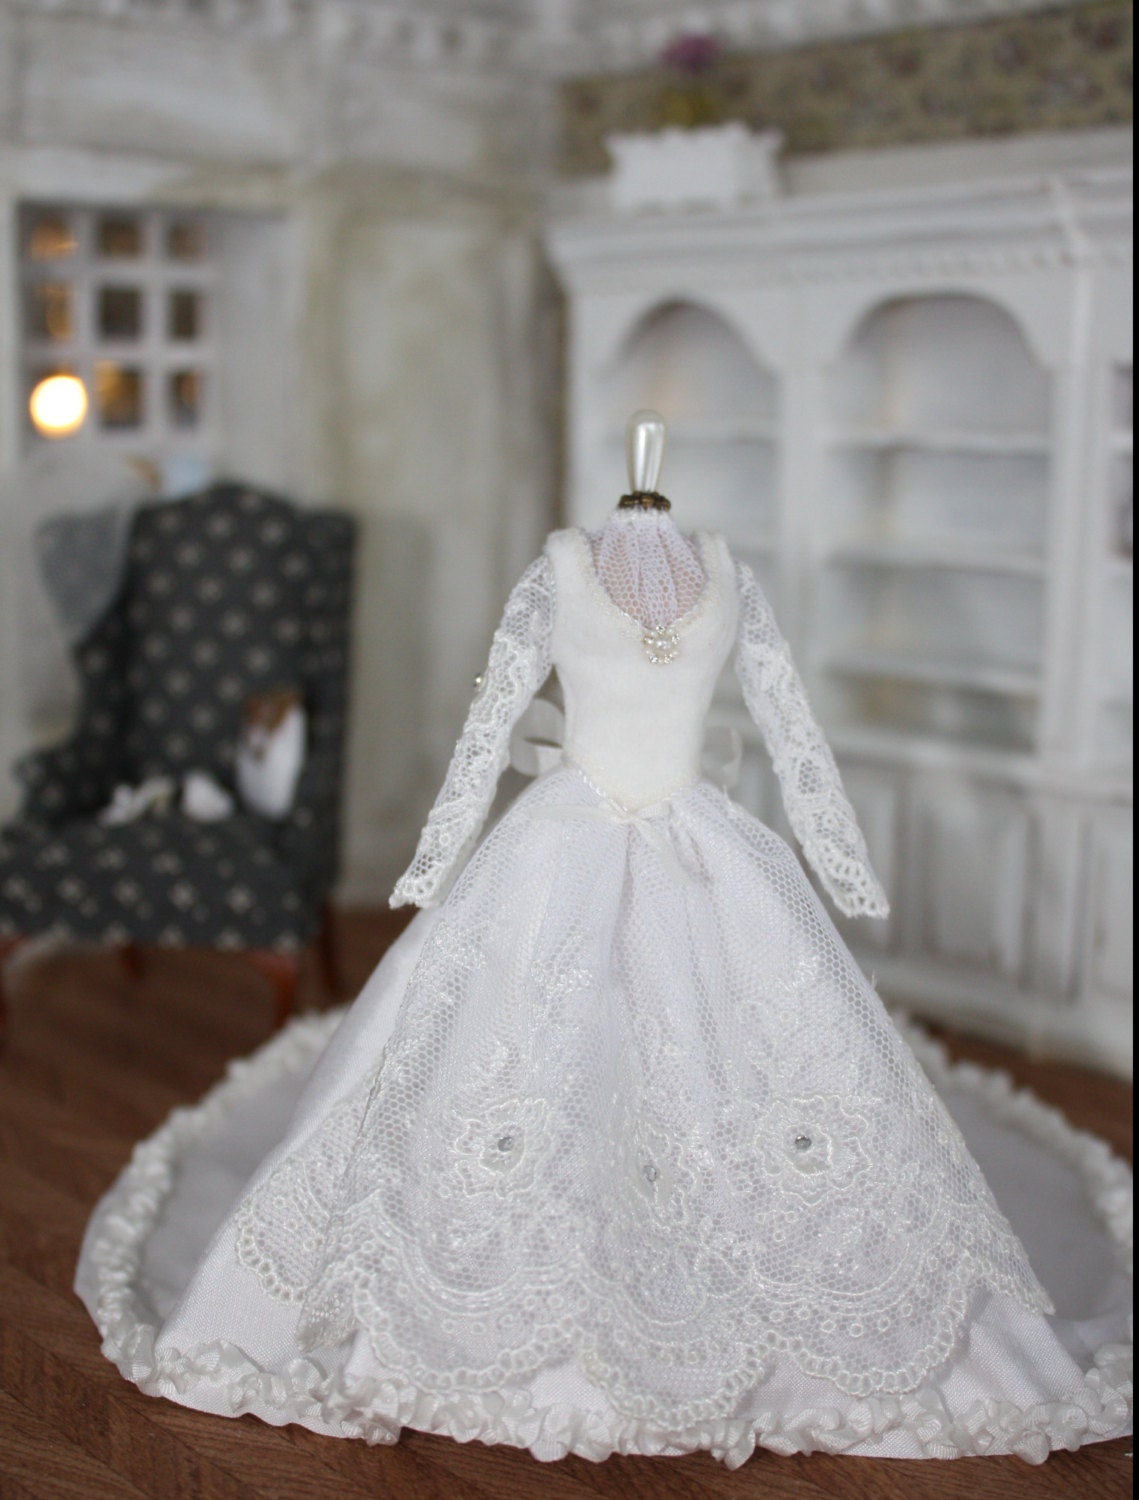 Handmade Wedding Dress In White Silk On A Mannequin And Shoes